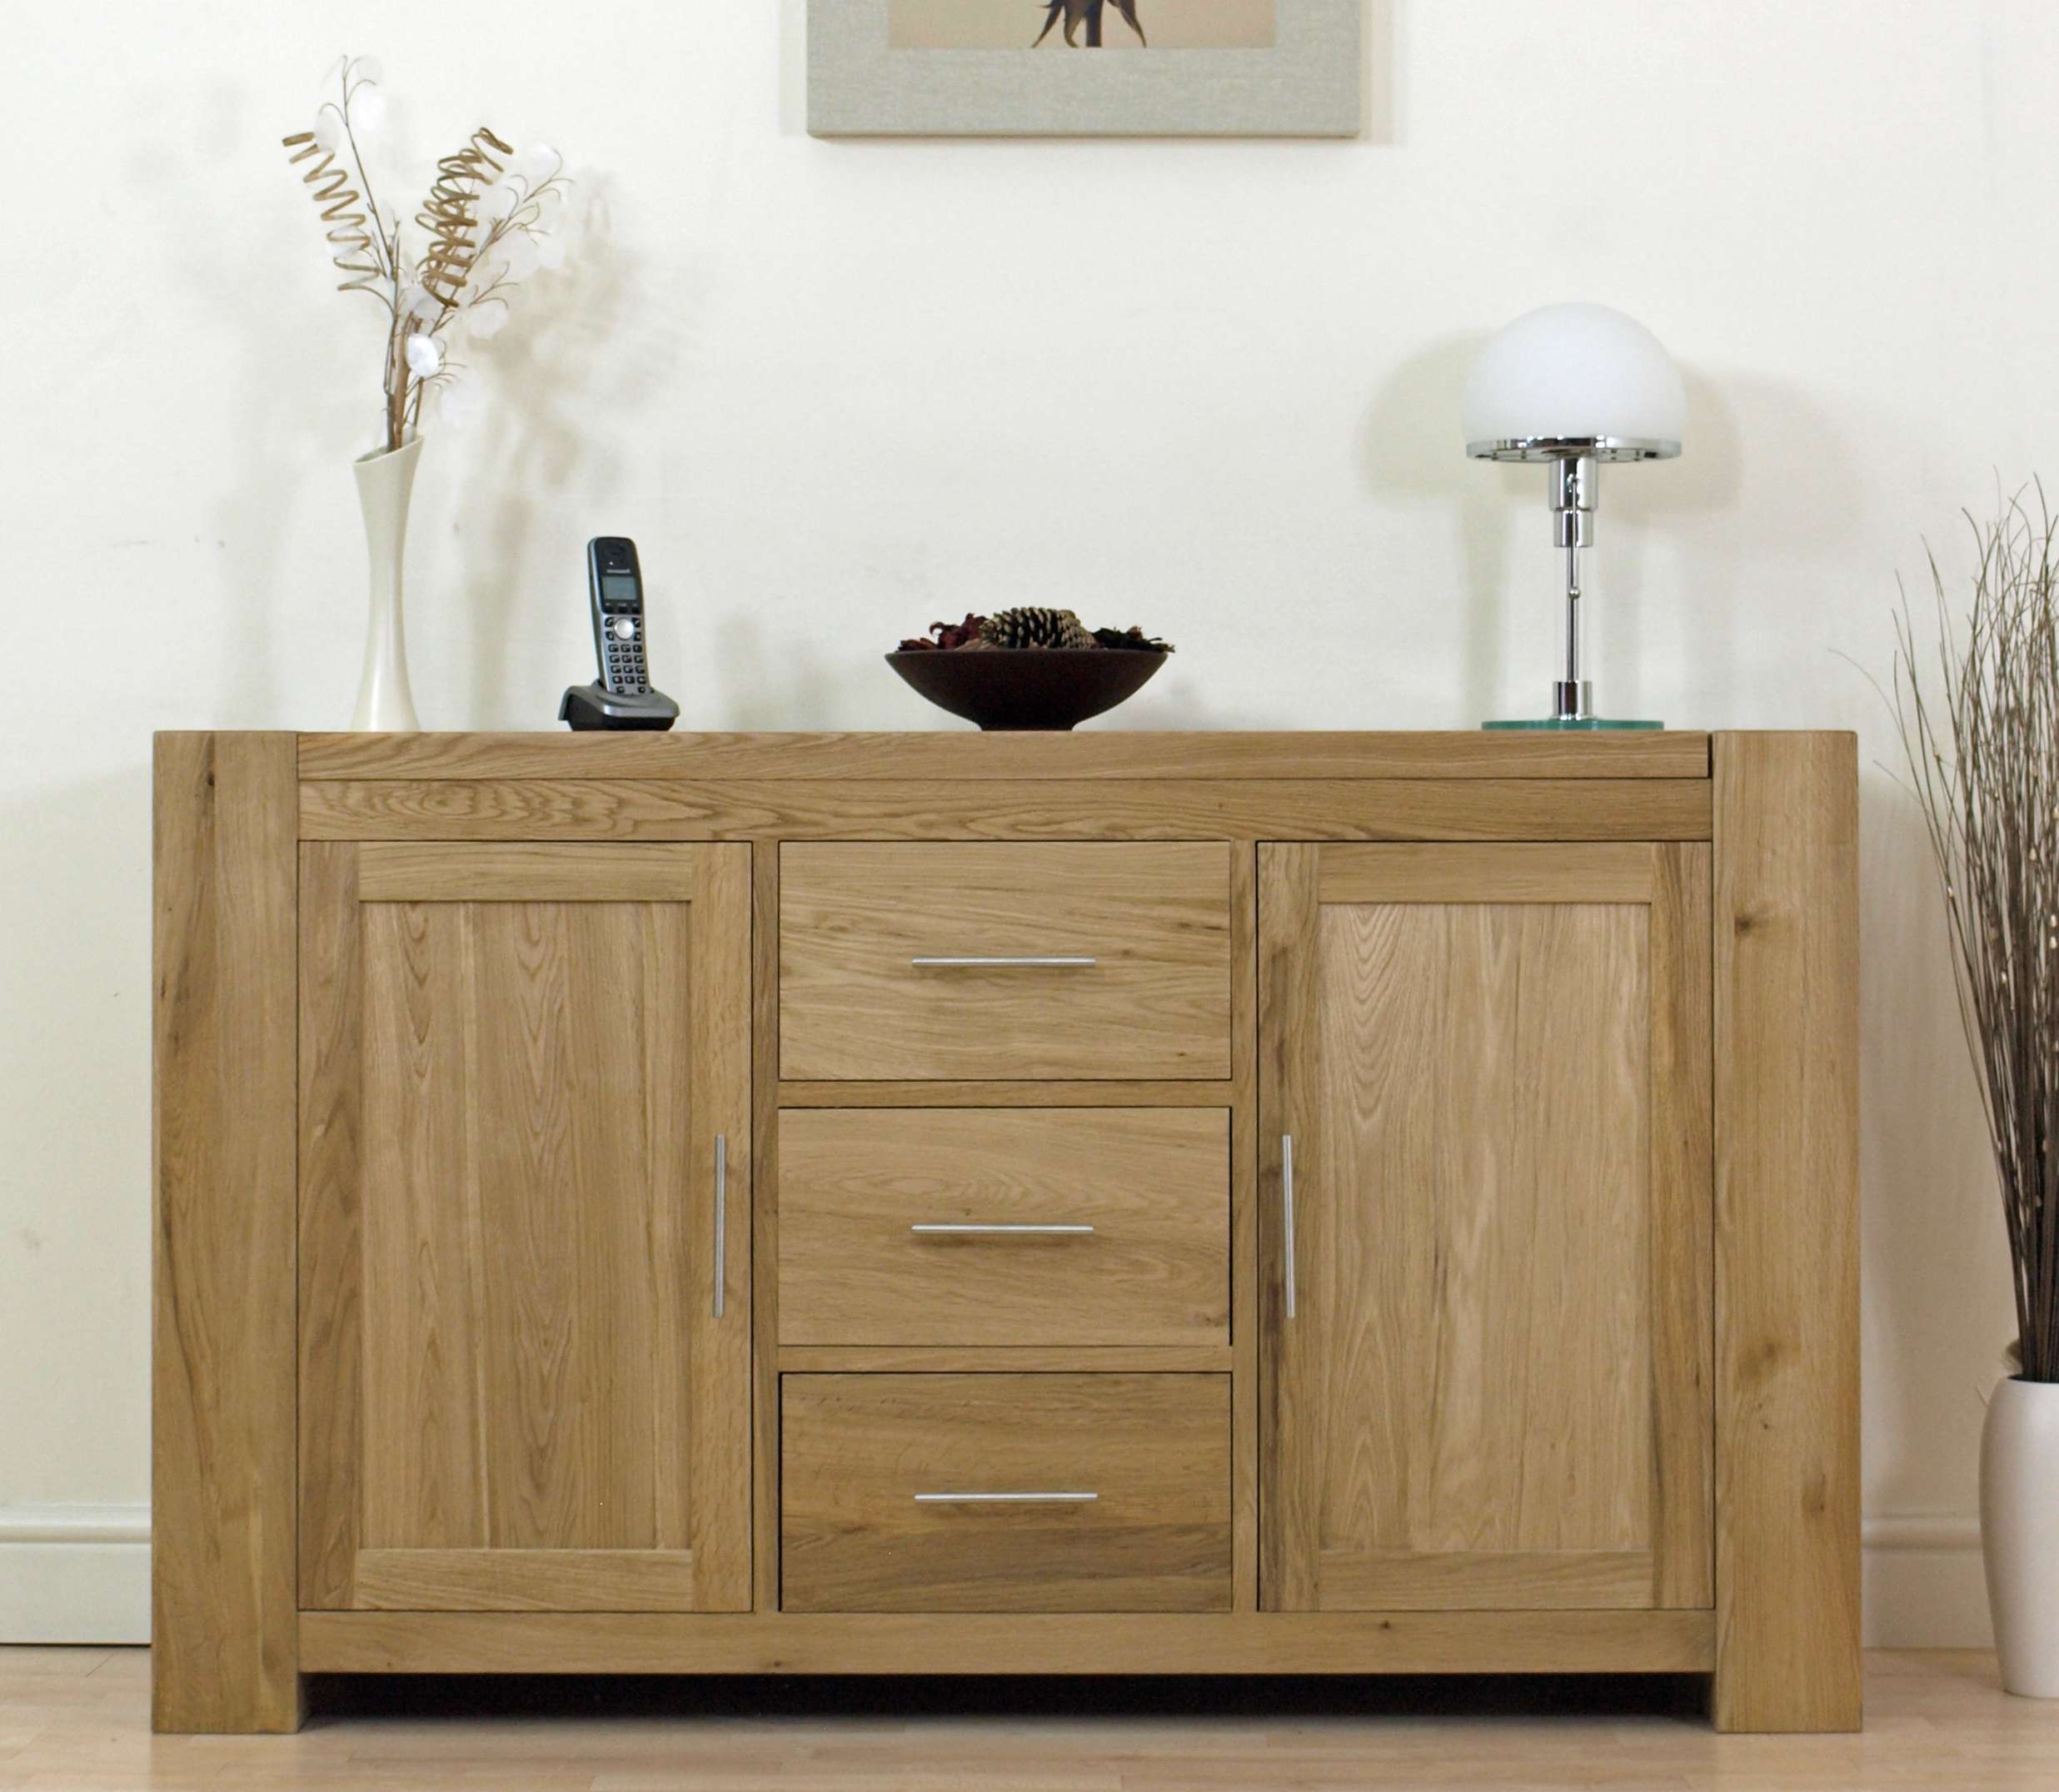 Solid Oak Sideboard Is Your First Choice Living Room Furniture – Hgnv With Regard To Furniture Sideboards (View 12 of 20)